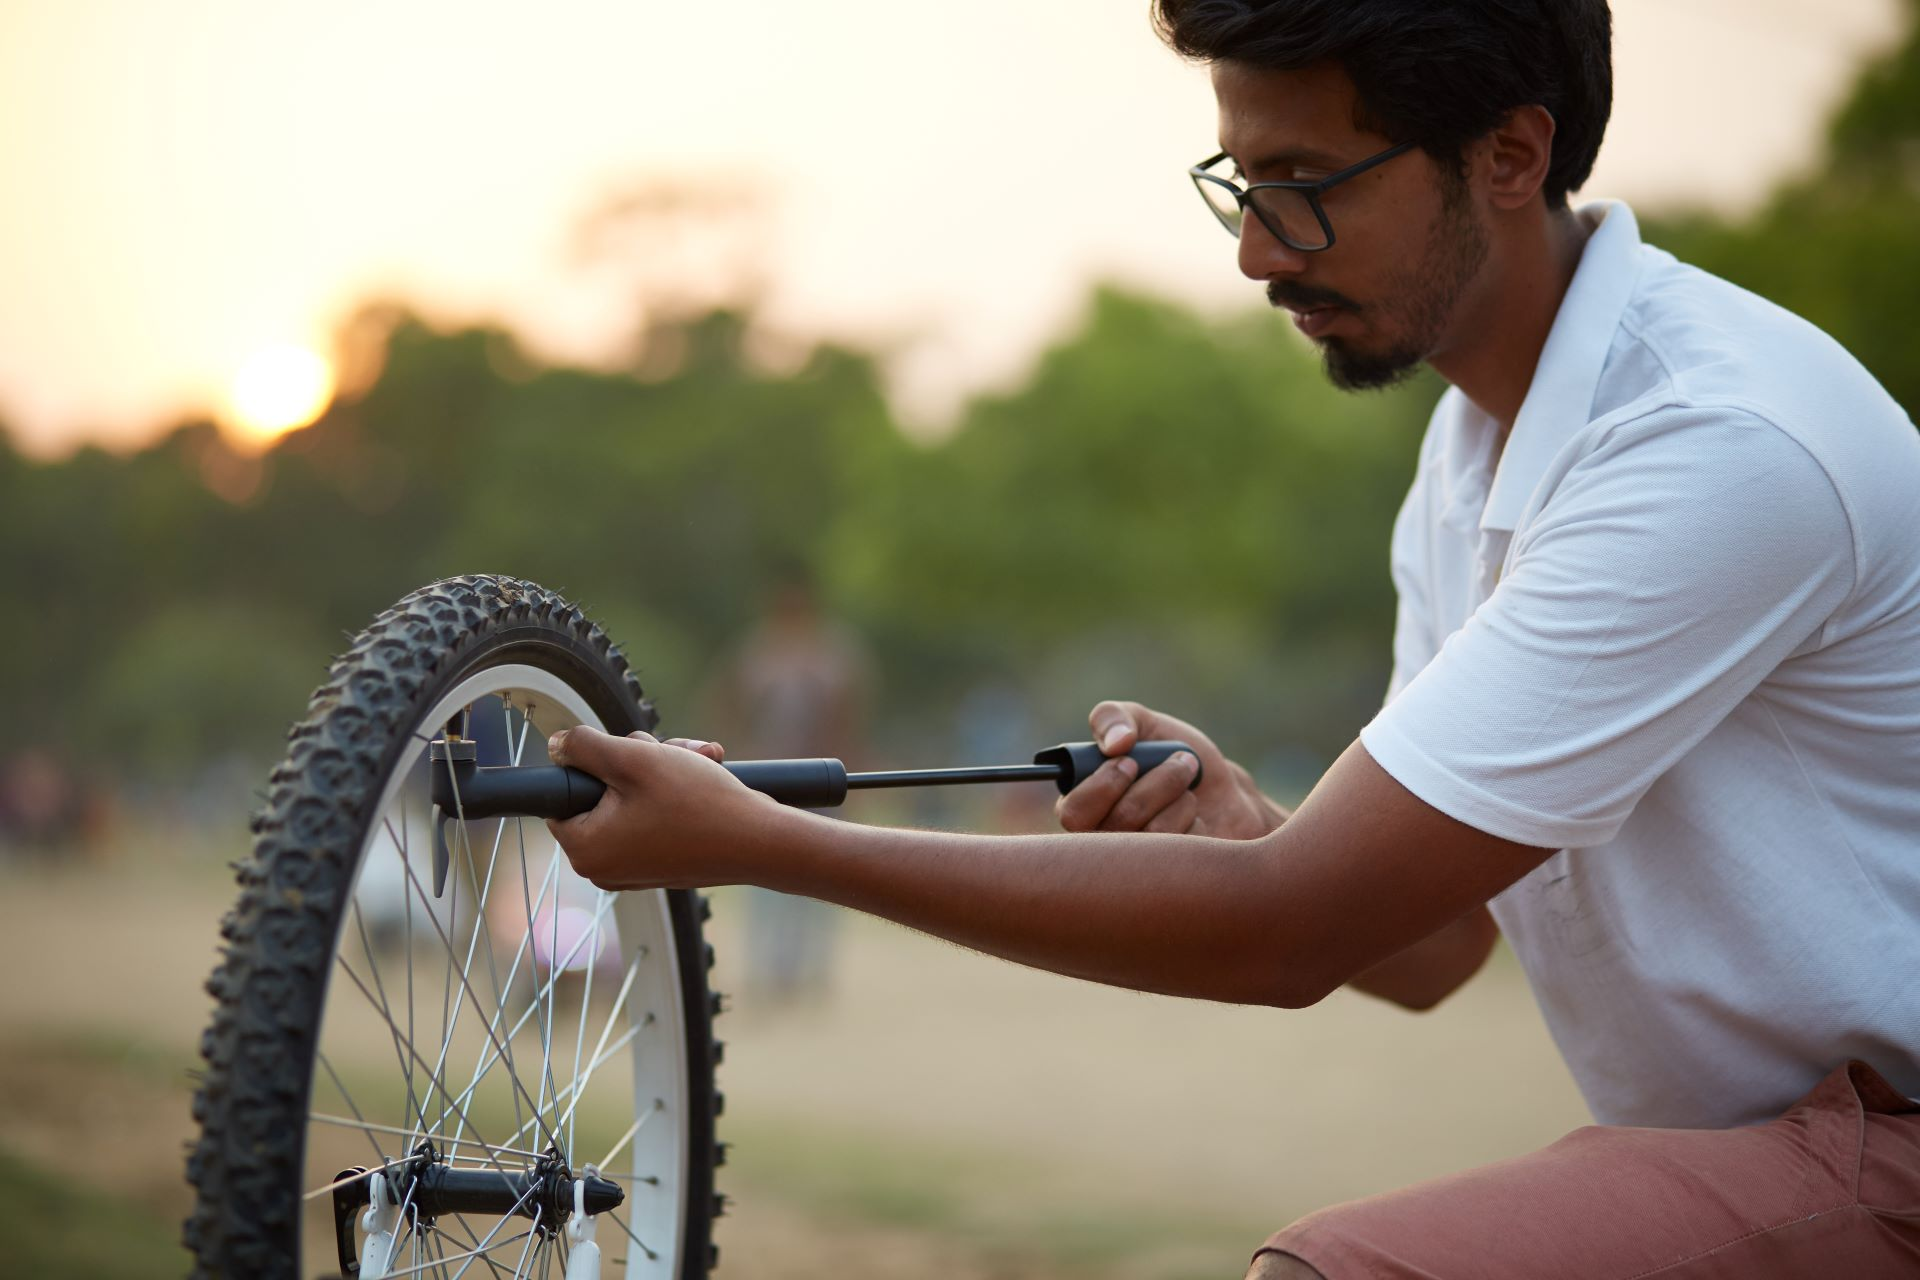 How To Avoid Punctures?